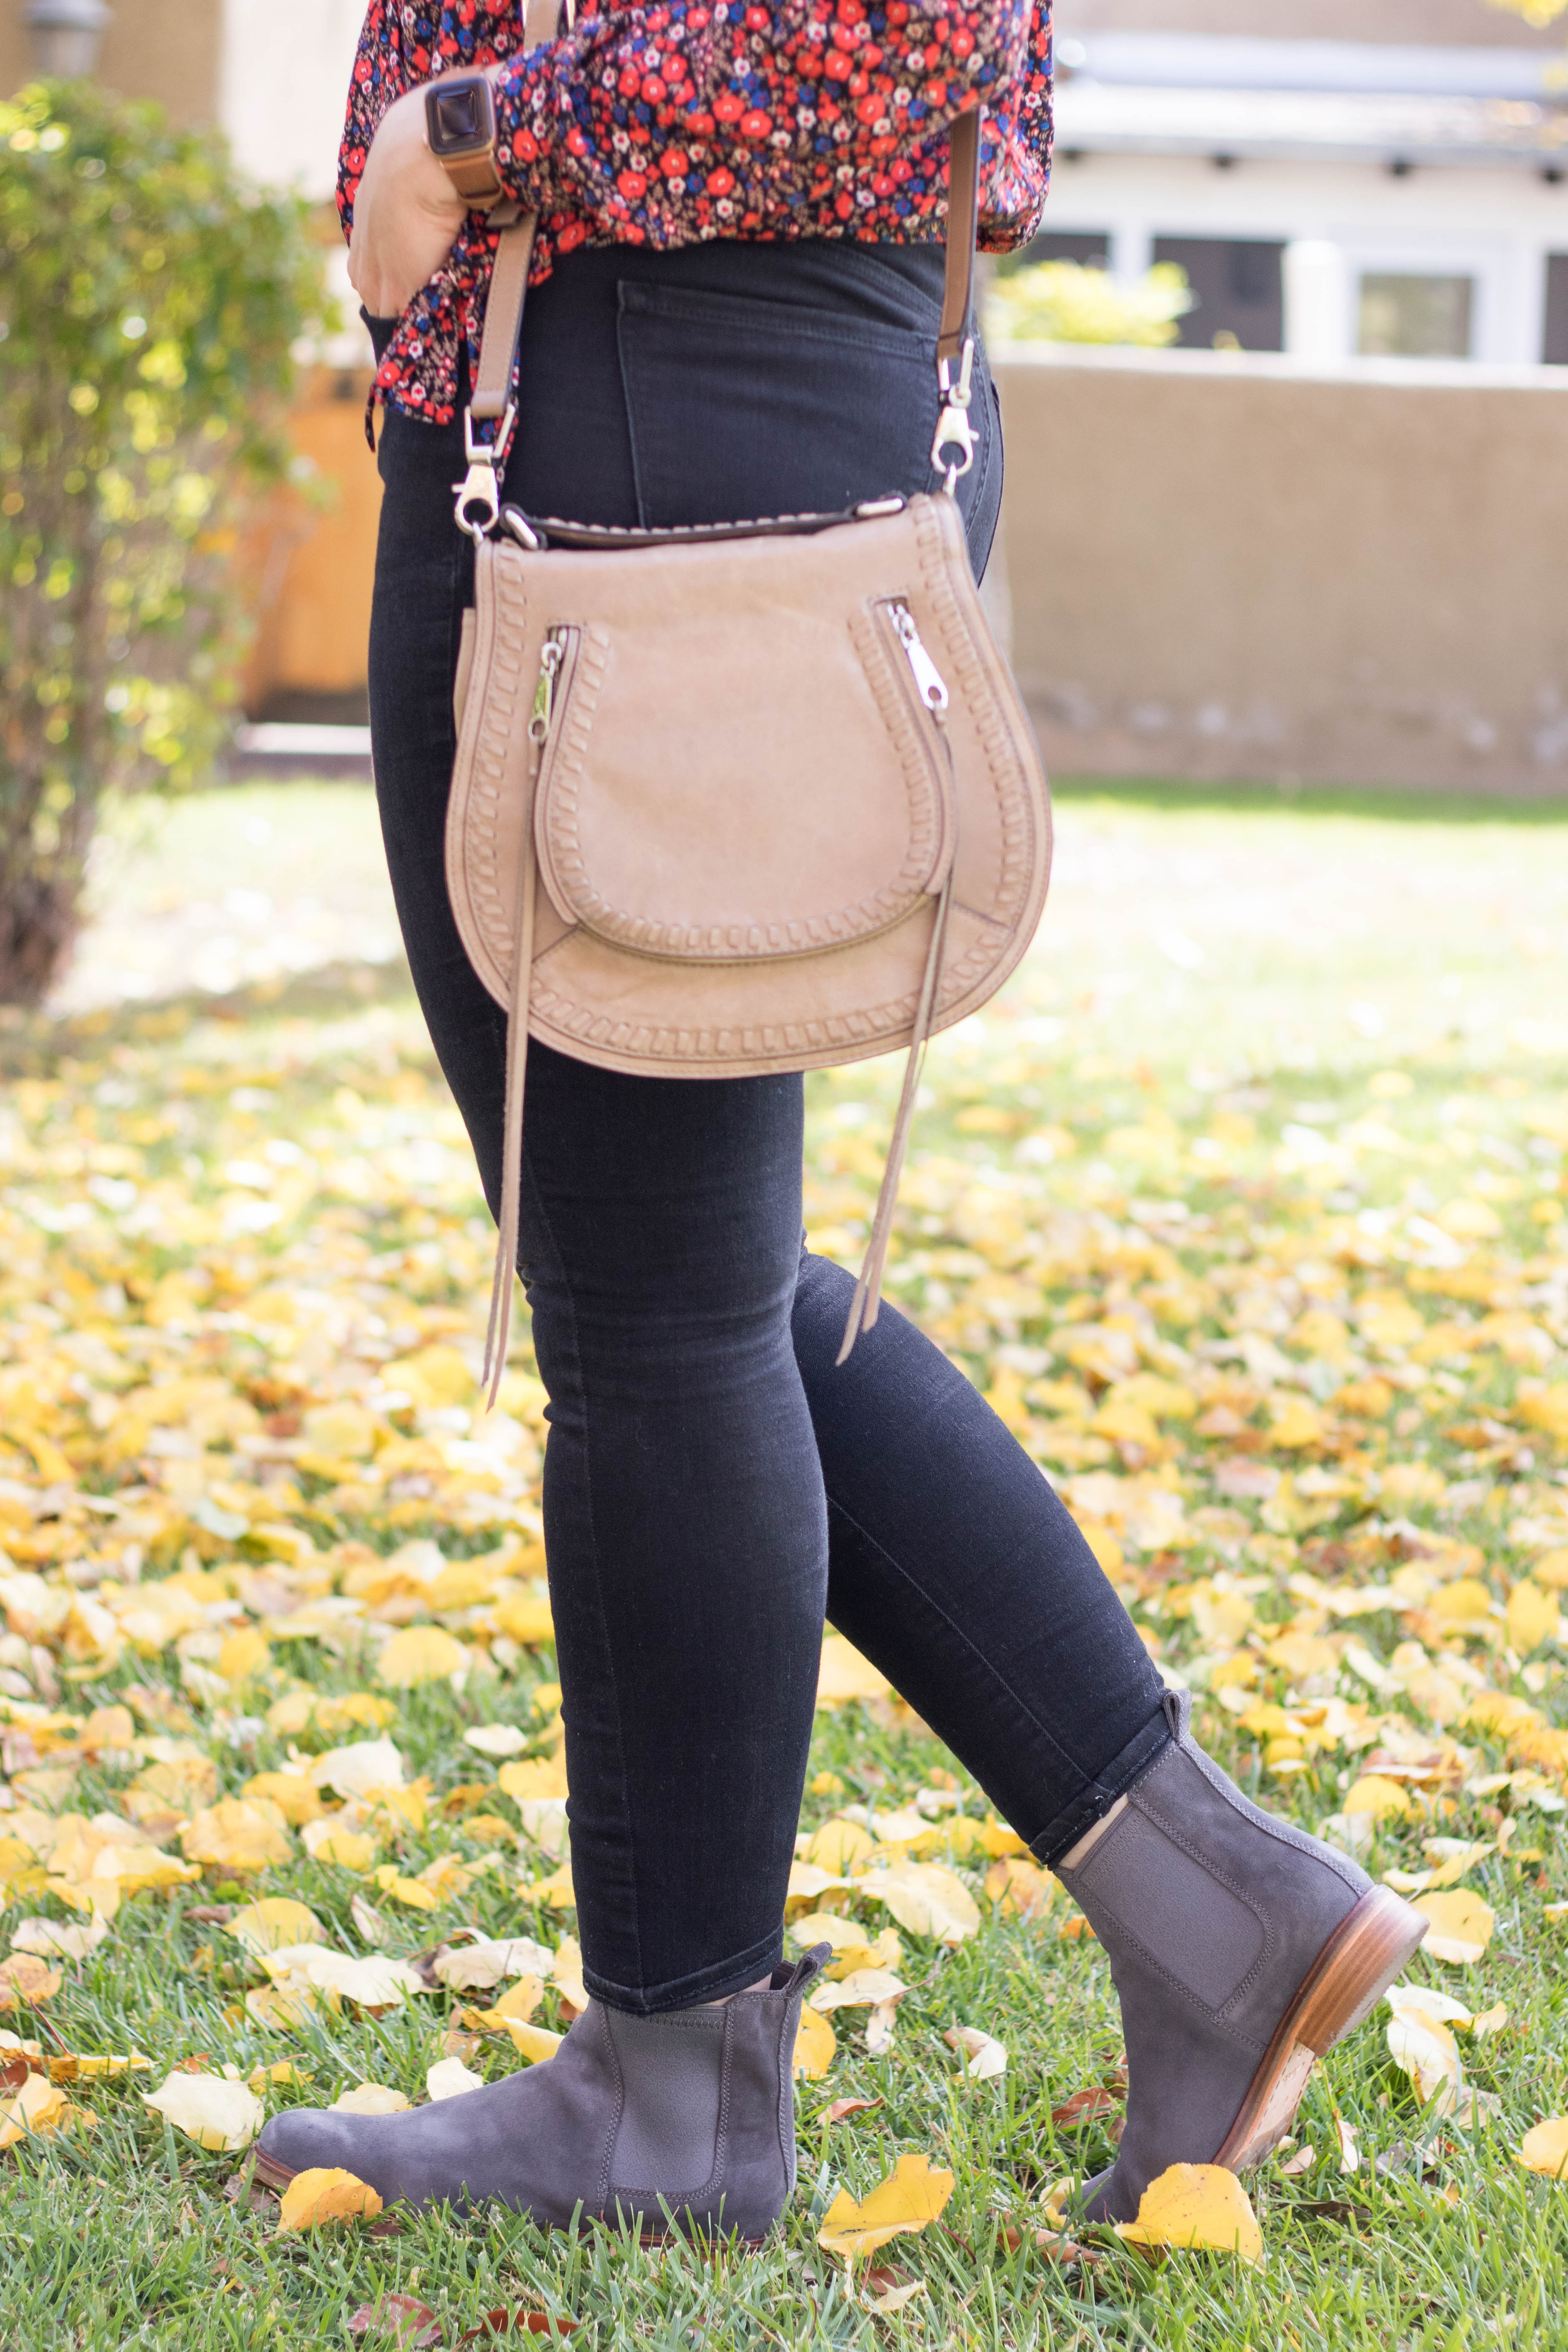 clarks gray ankle boots #clarks #ankleboots #rebeccaminkoff